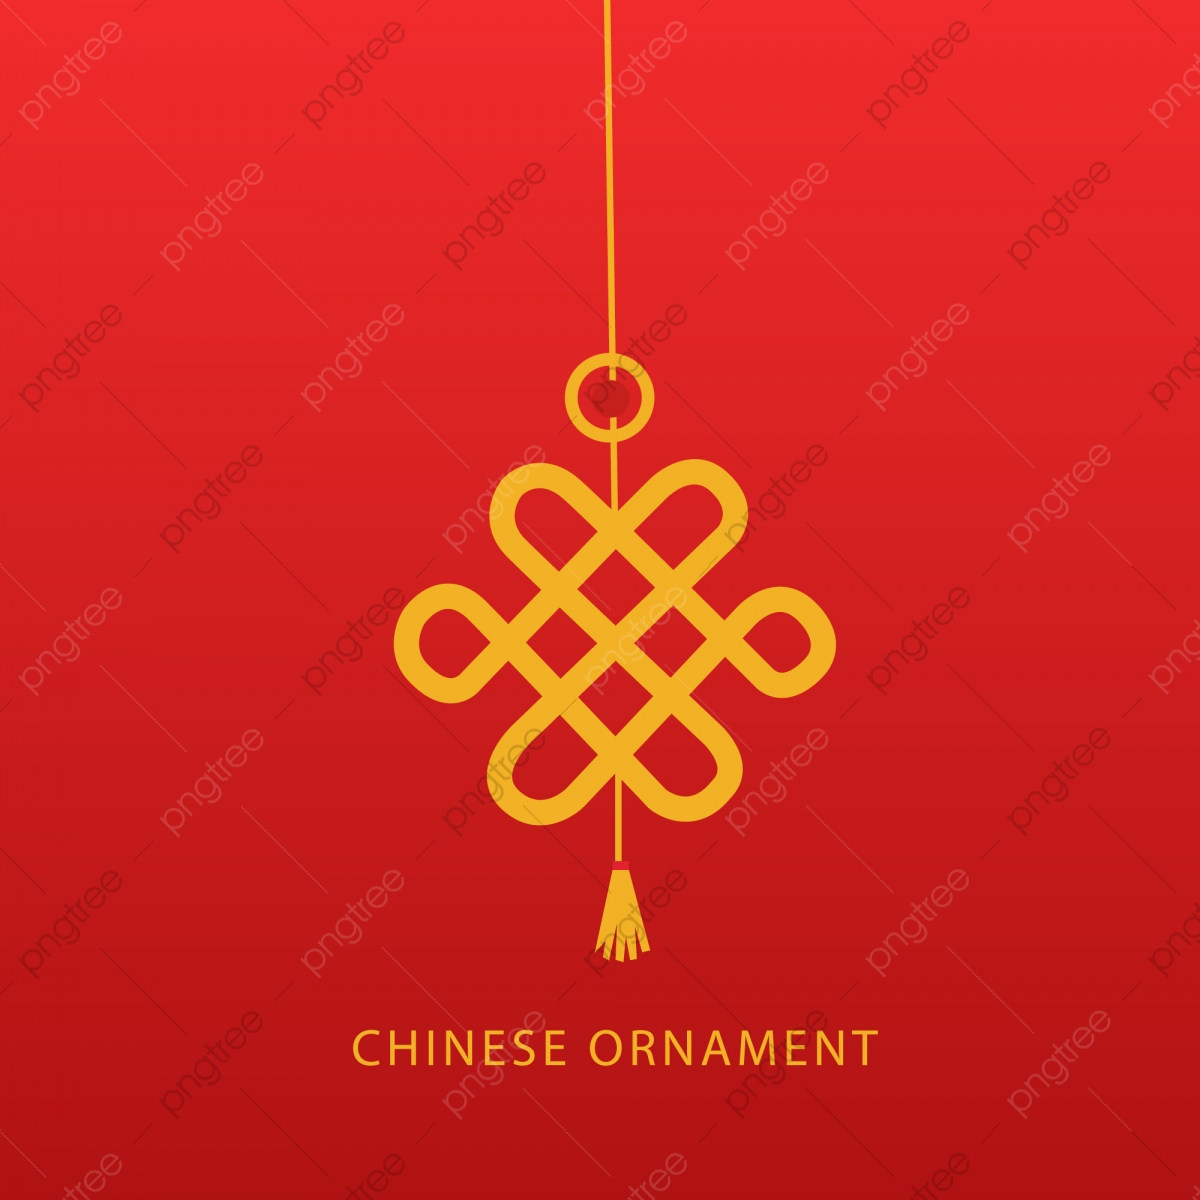 chinese ornament year china symbol png and vector with transparent background for free download https pngtree com freepng chinese ornament 3770567 html